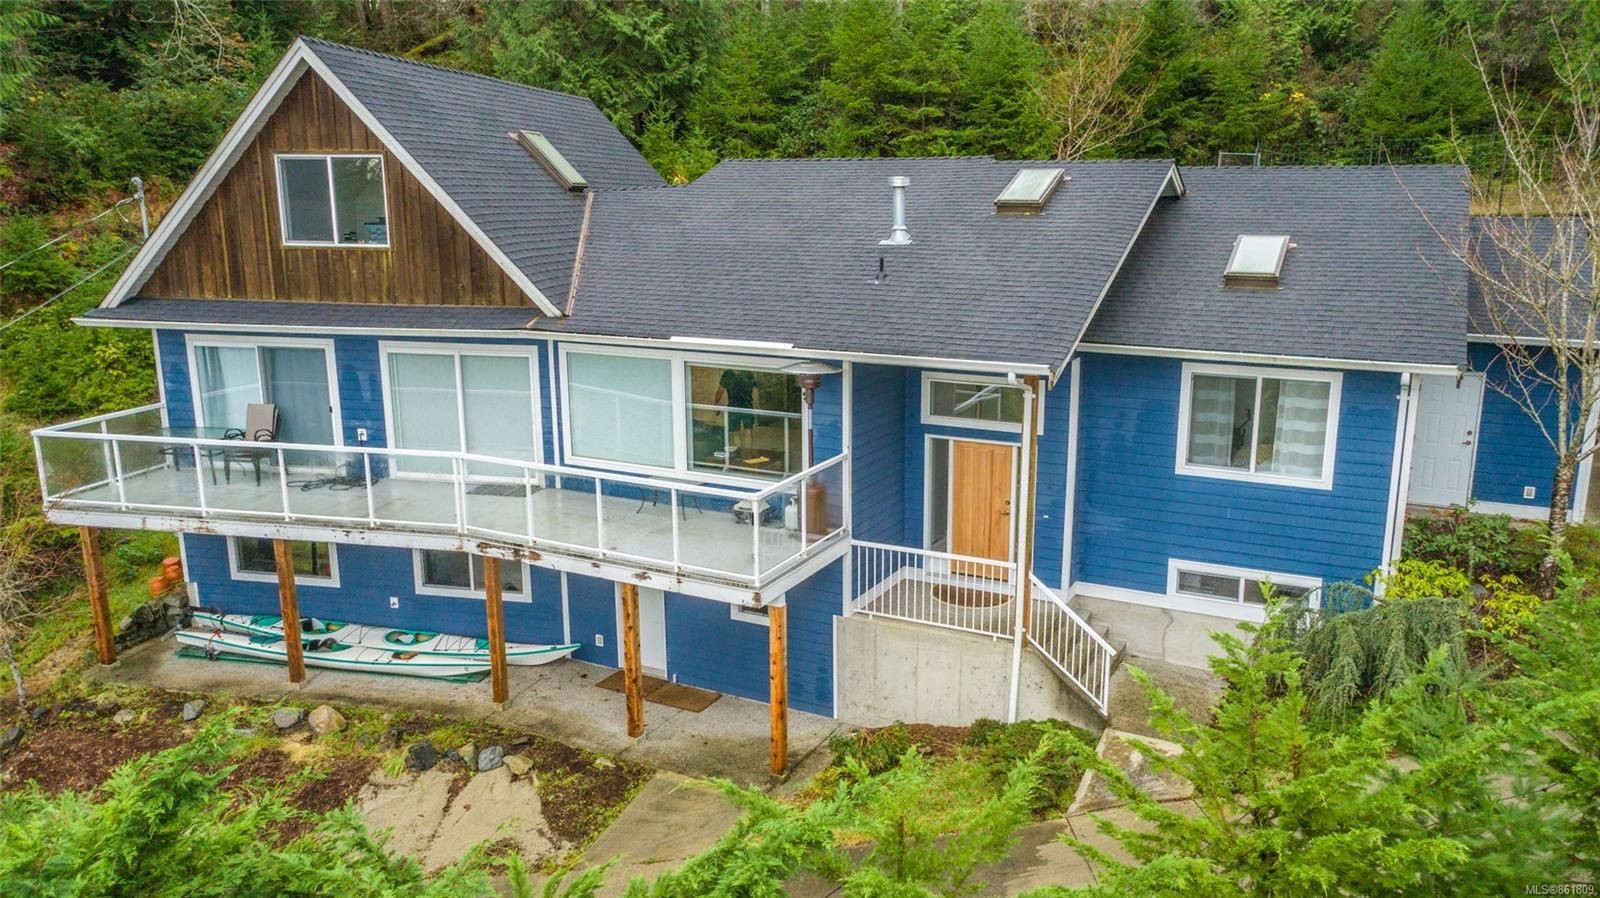 Main Photo: 3110 Swallow Cres in : PQ Nanoose House for sale (Parksville/Qualicum)  : MLS®# 861809